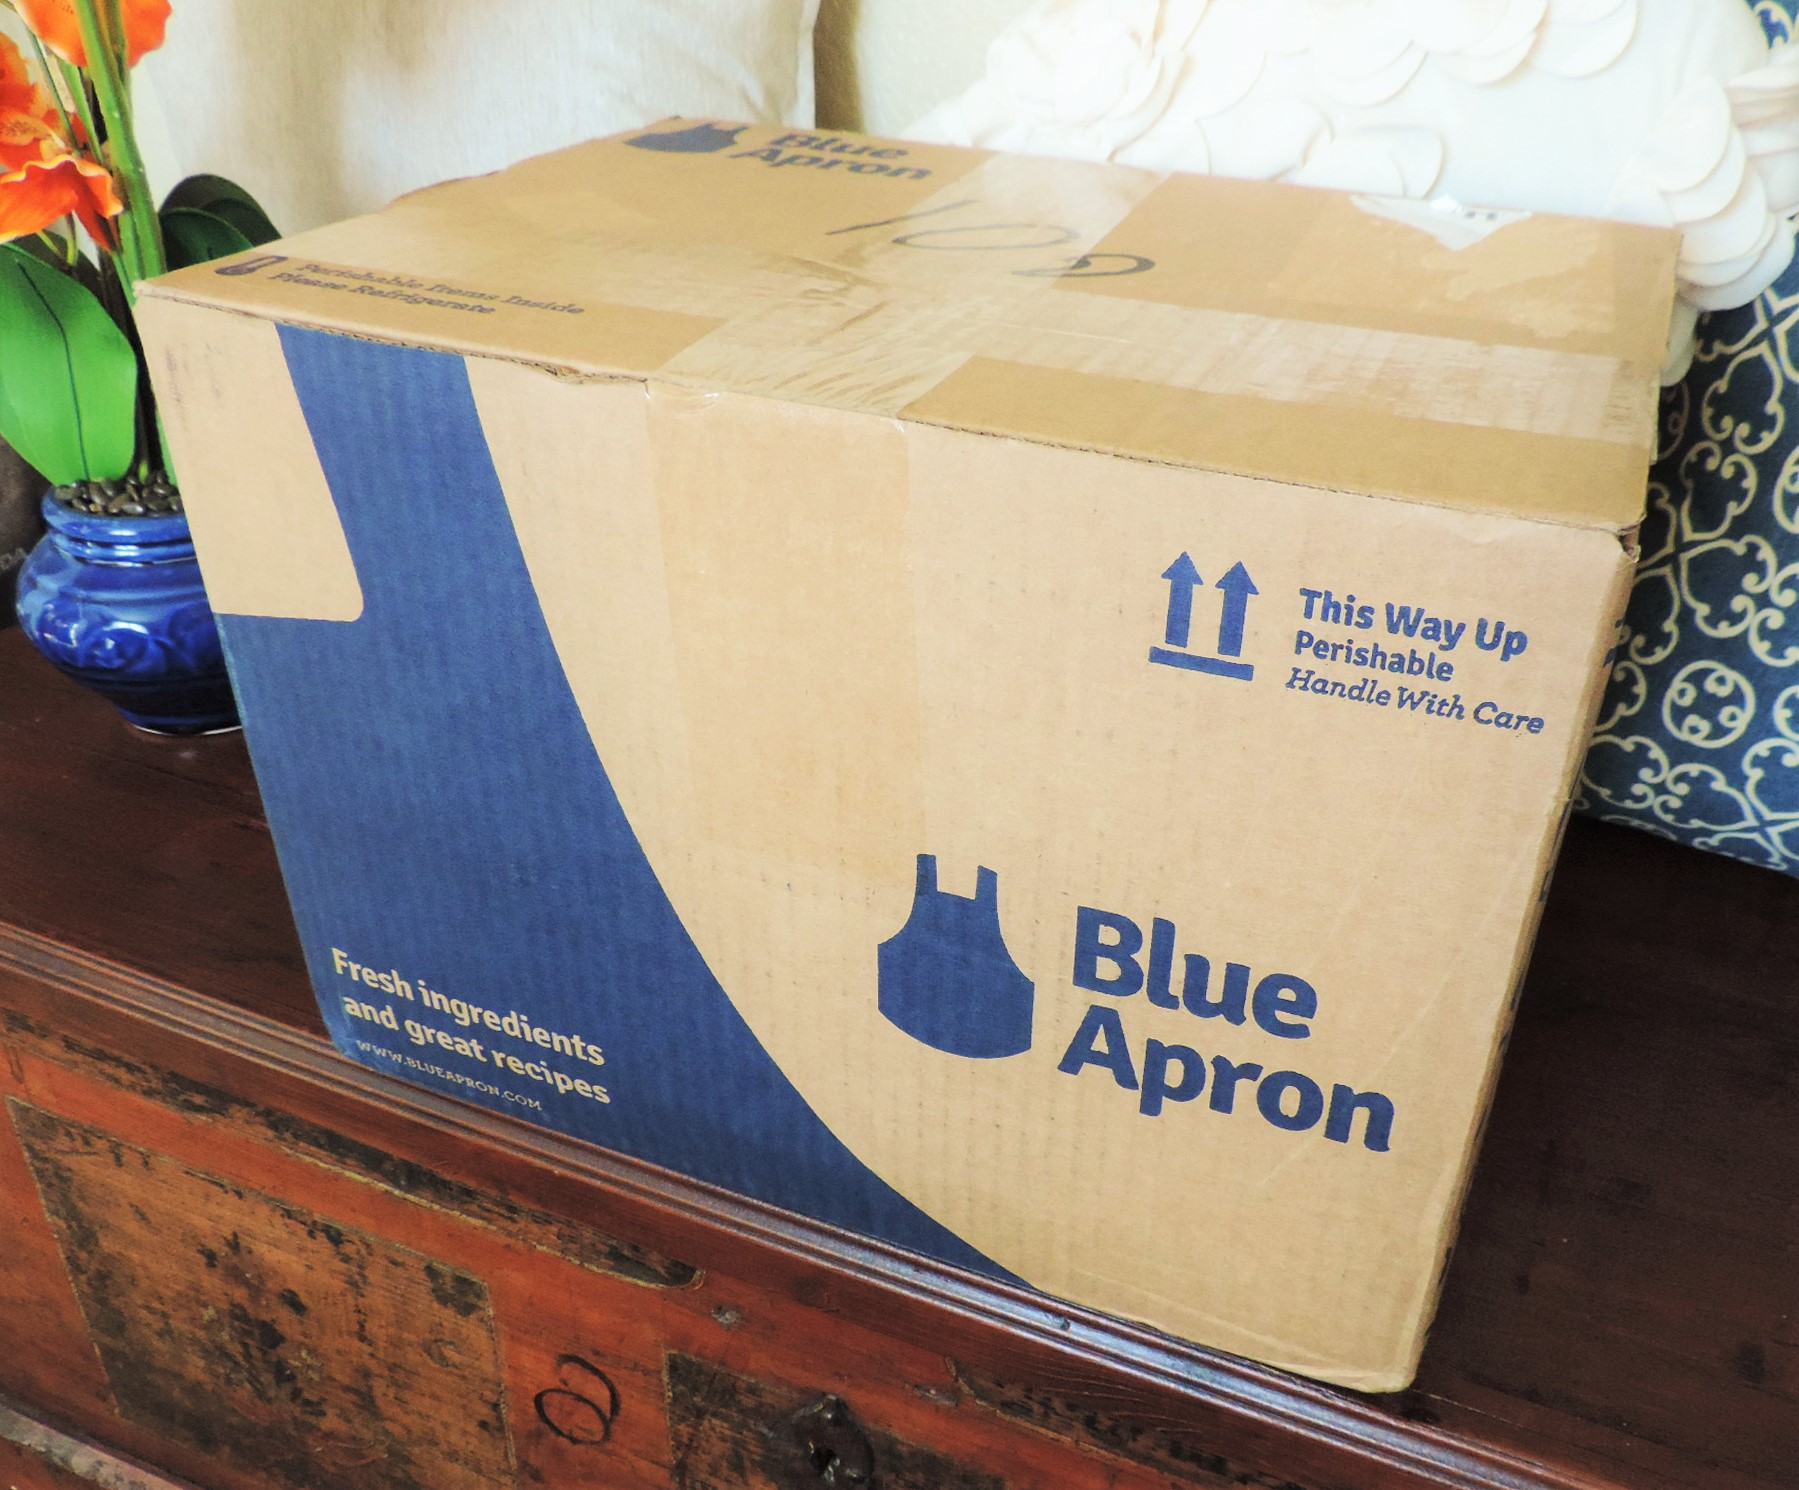 Blue apron shipping